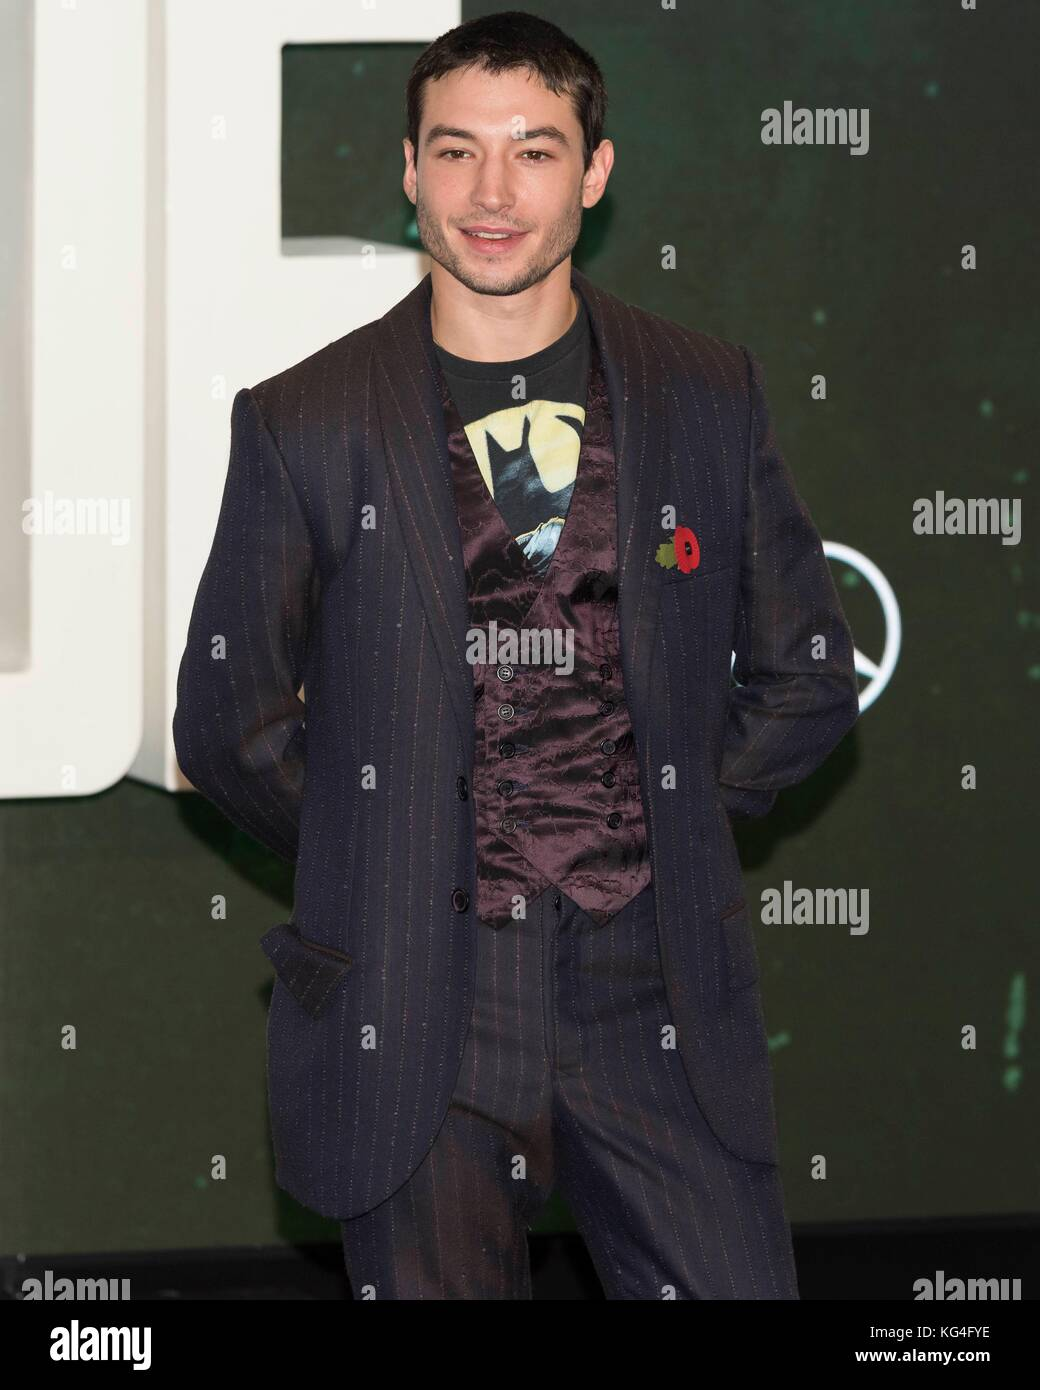 Ezra Miller attends photocall of JUSTICE LEAGUE. London, England, UK (04/11/2017) | usage worldwide - Stock Image